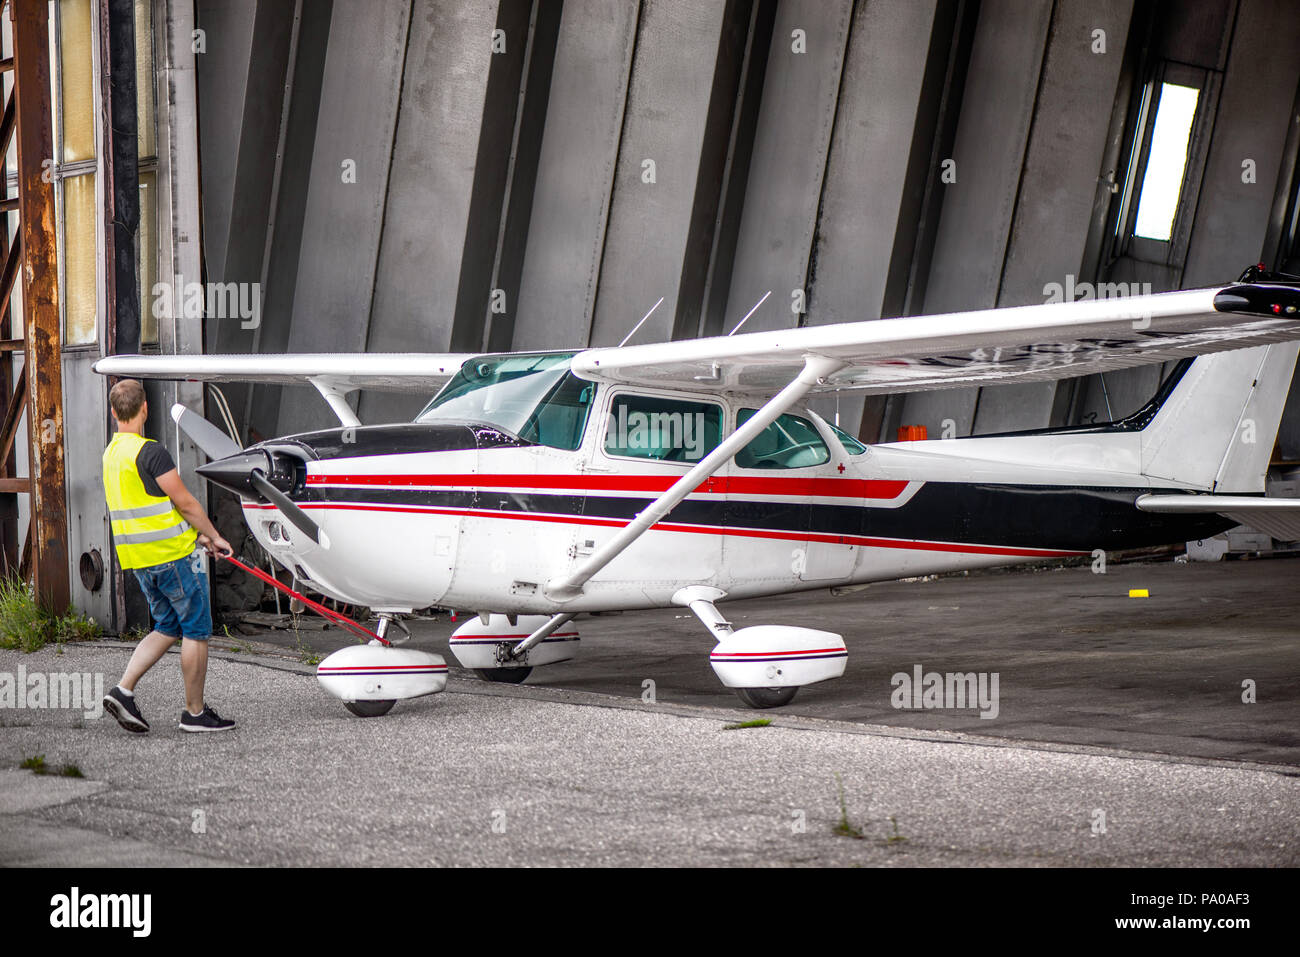 de27f7059c7 Old Aircraft Hangar Stock Photos   Old Aircraft Hangar Stock Images ...